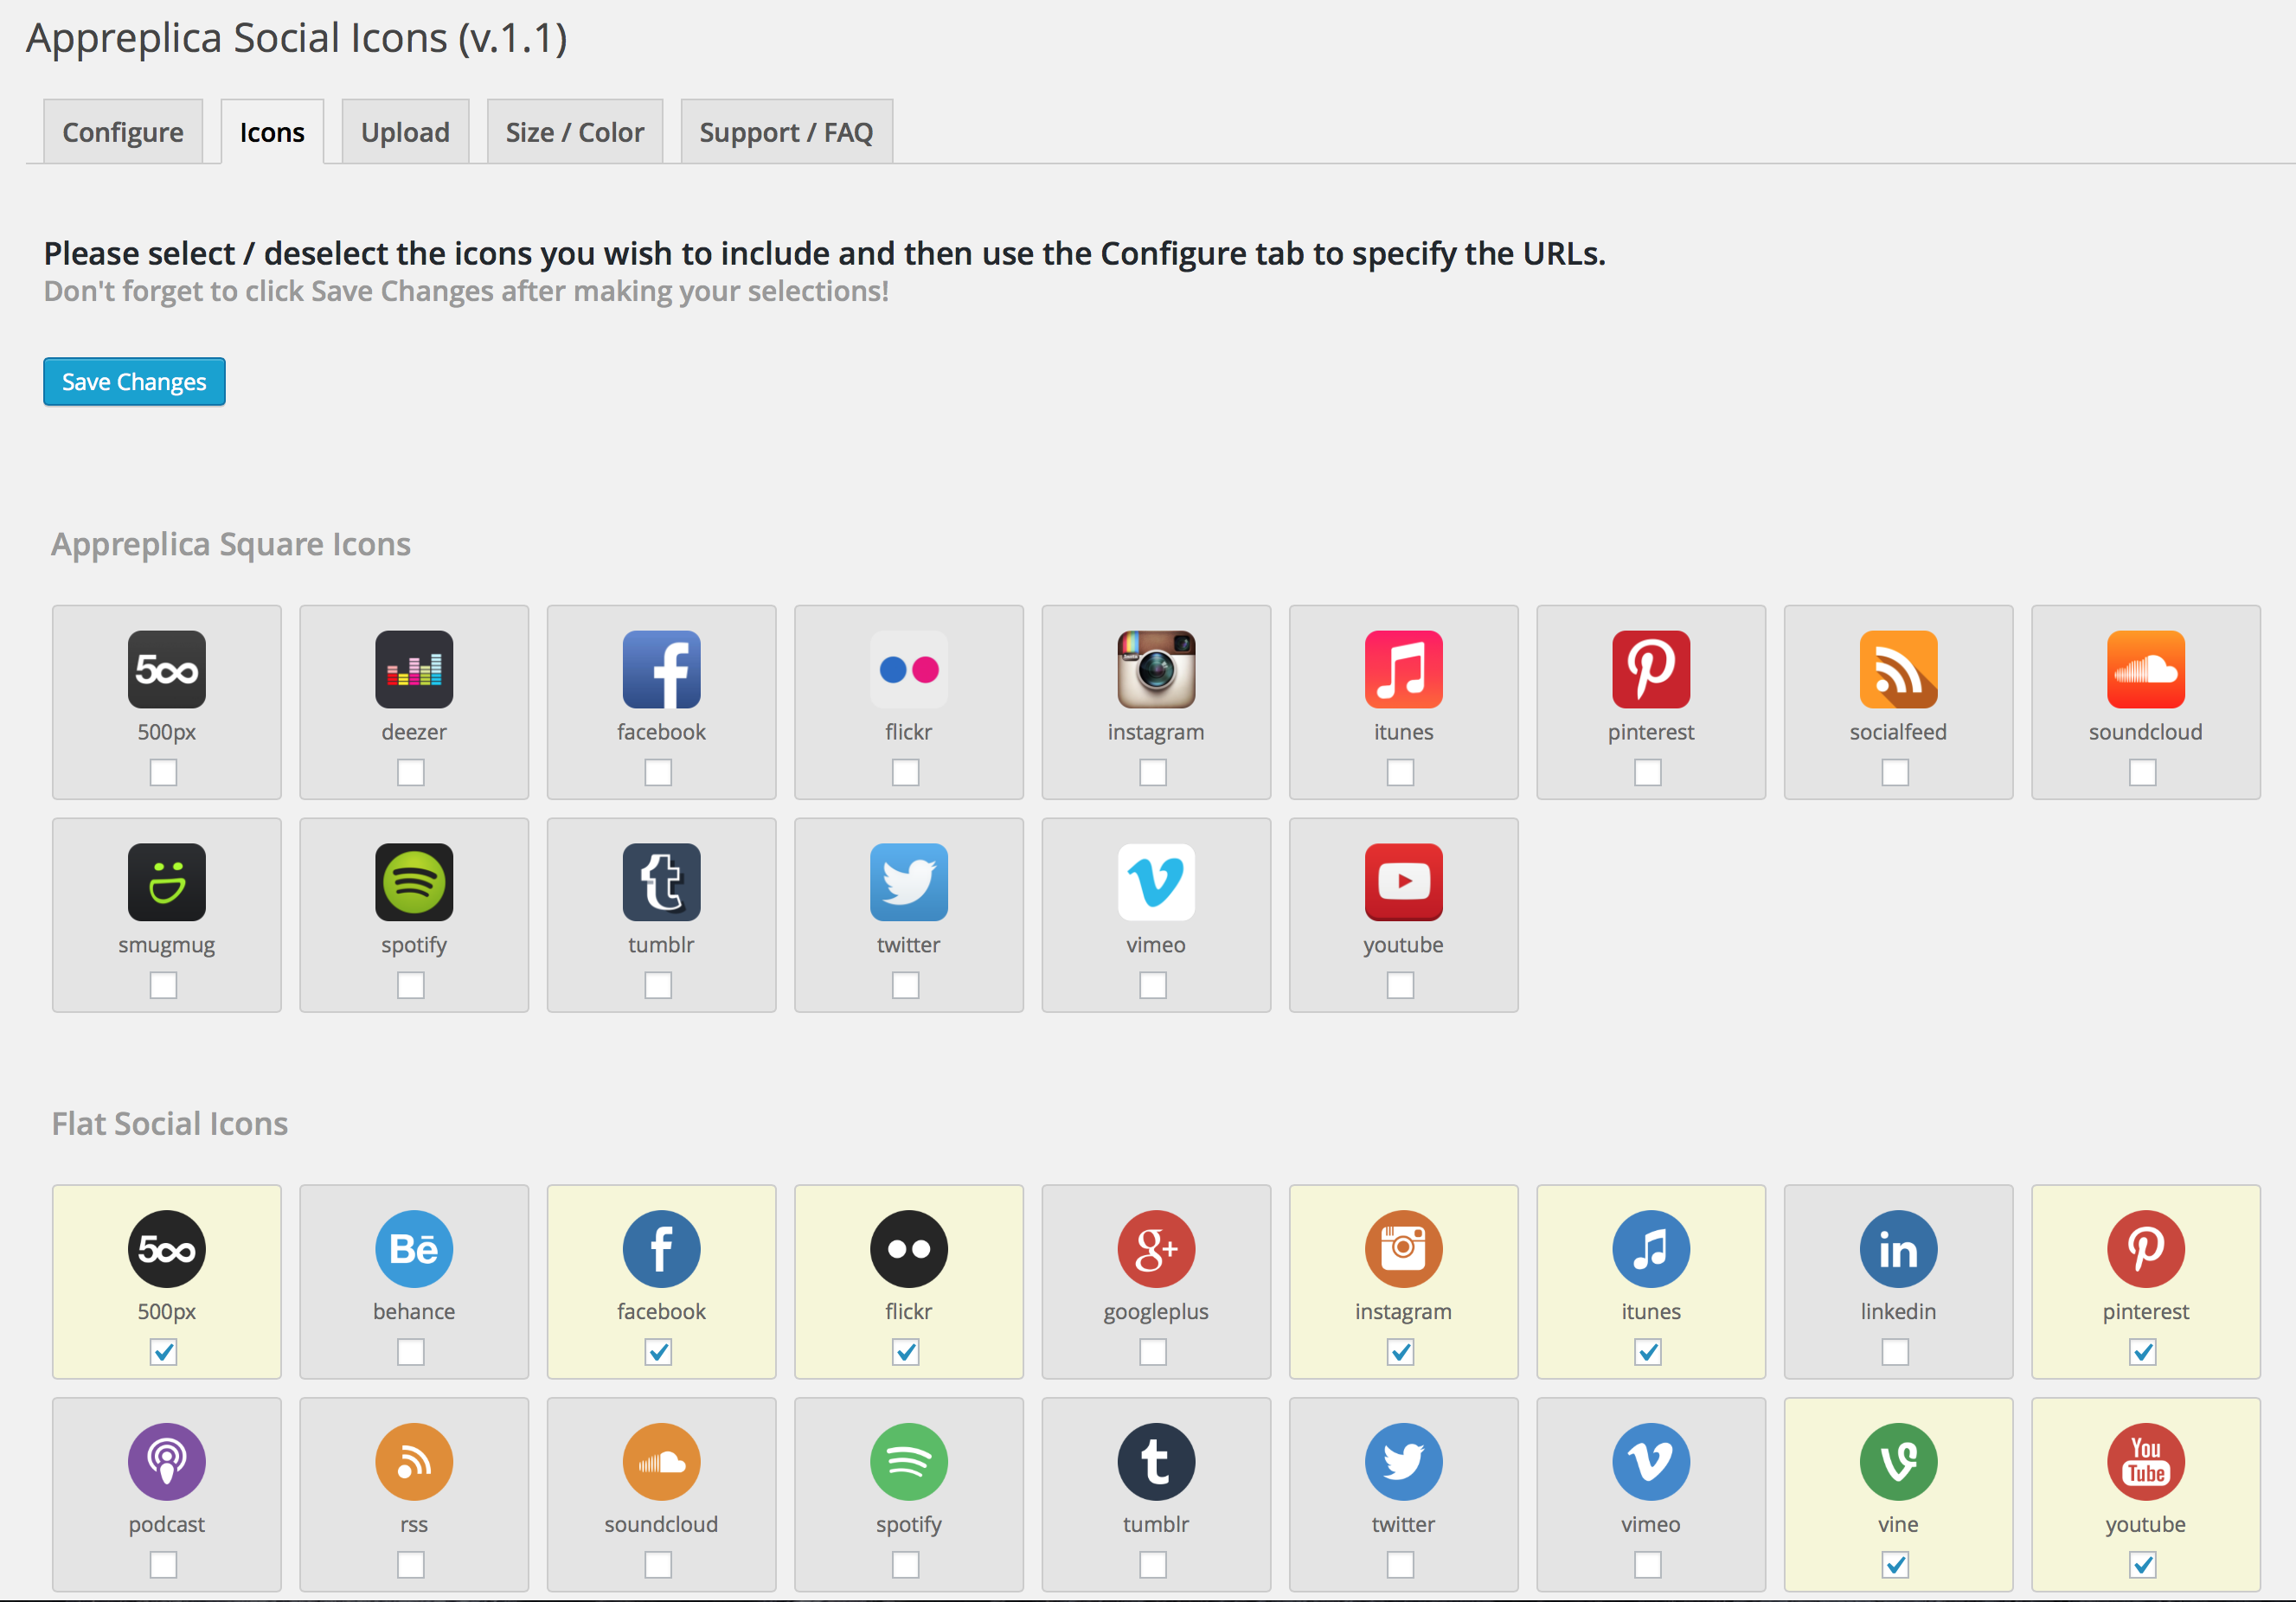 appreplica-social-icons screenshot 1